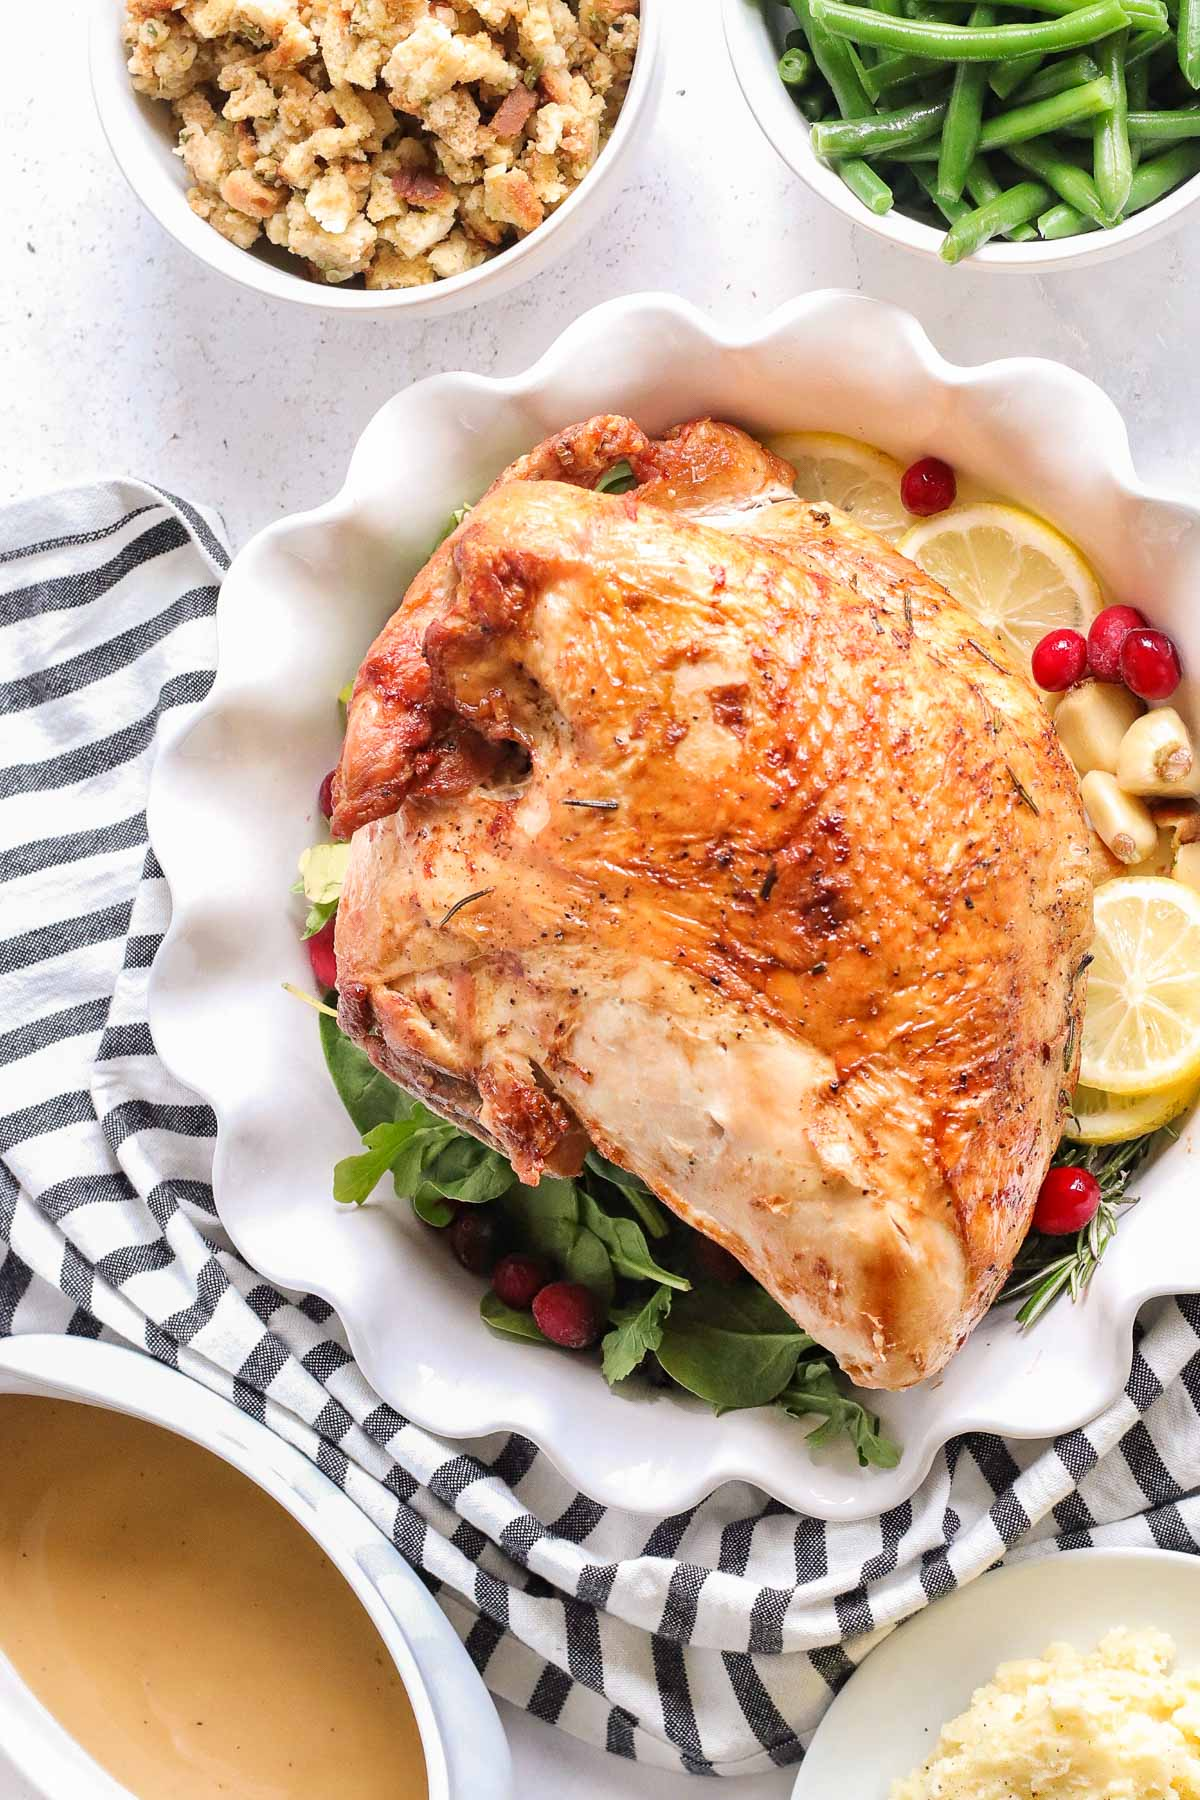 A roasted turkey breast on a serving platter